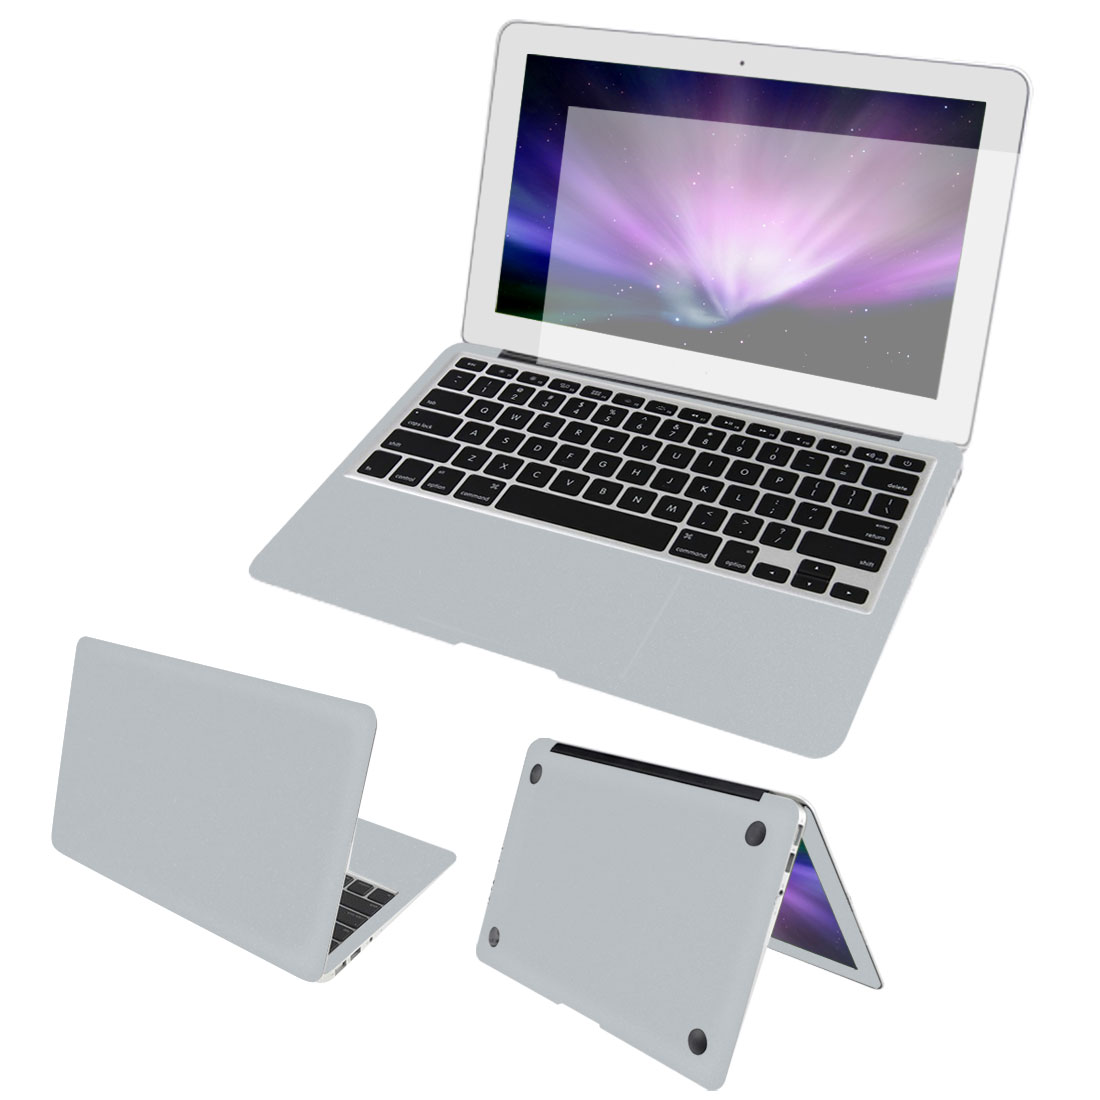 Silver Tone Full Body Wrap Protector Decal Skin Screen Guard for Macbook Pro 13""